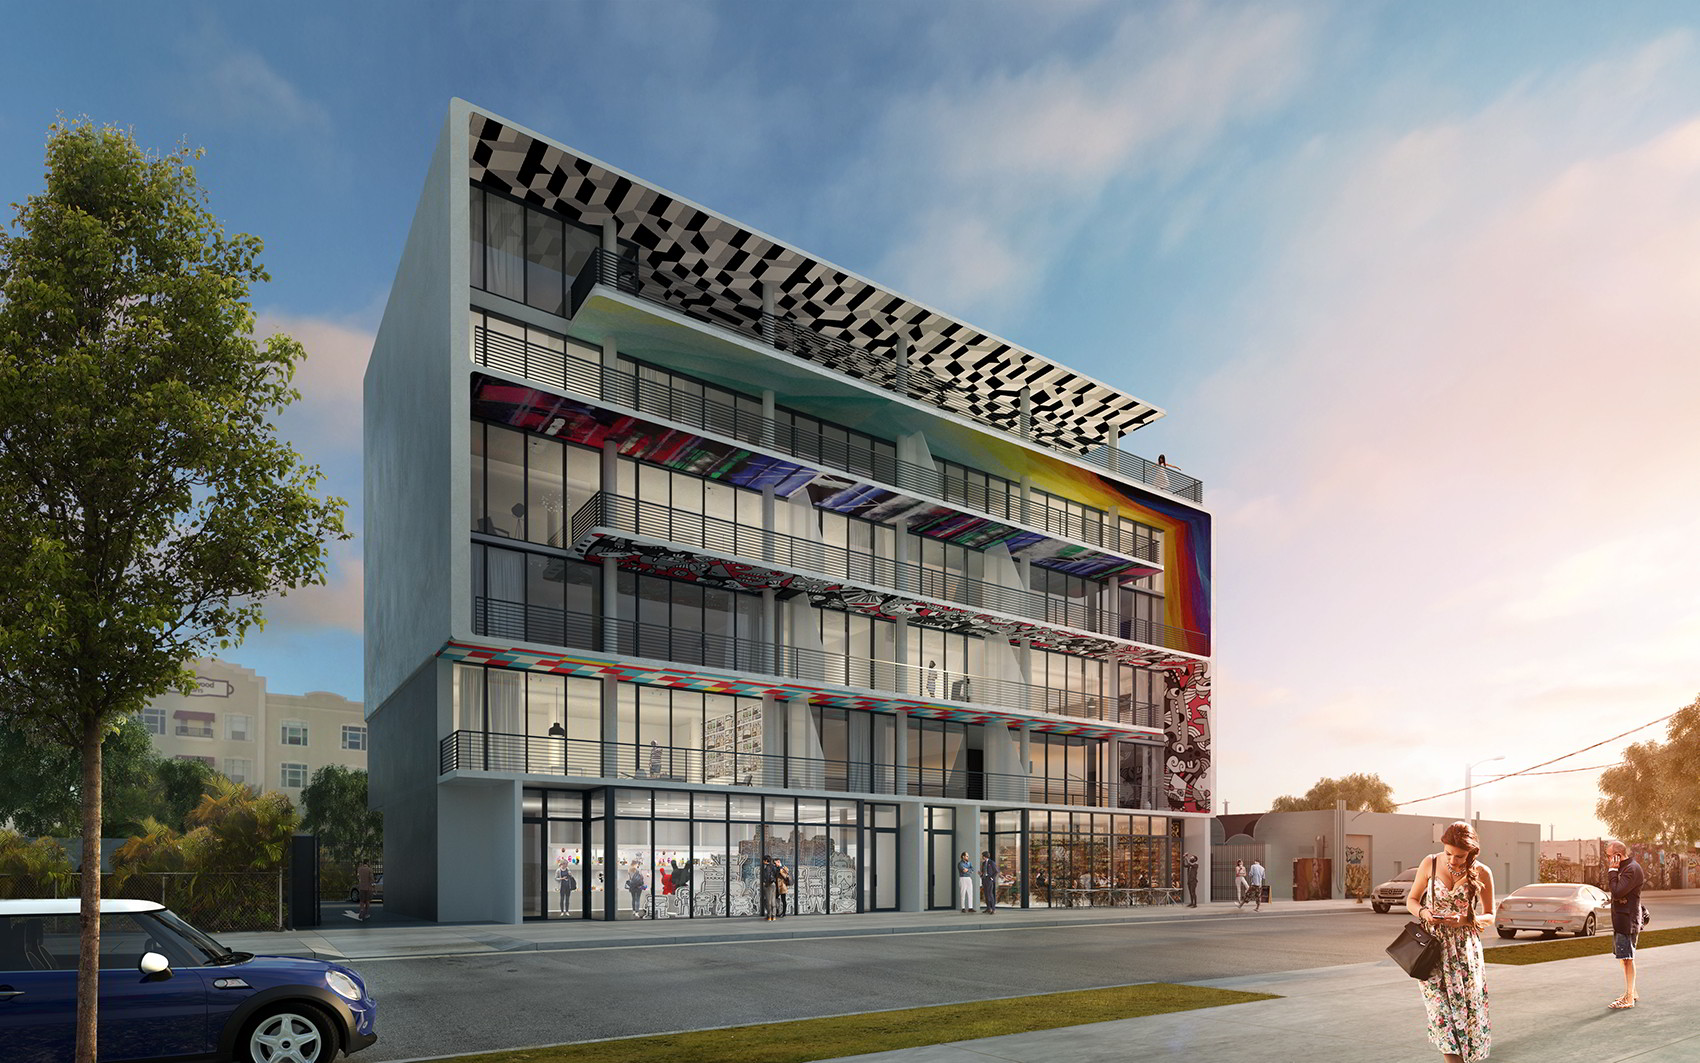 250 Wynwood is the first new condominium project in Wynwood Cafe' District since 2005